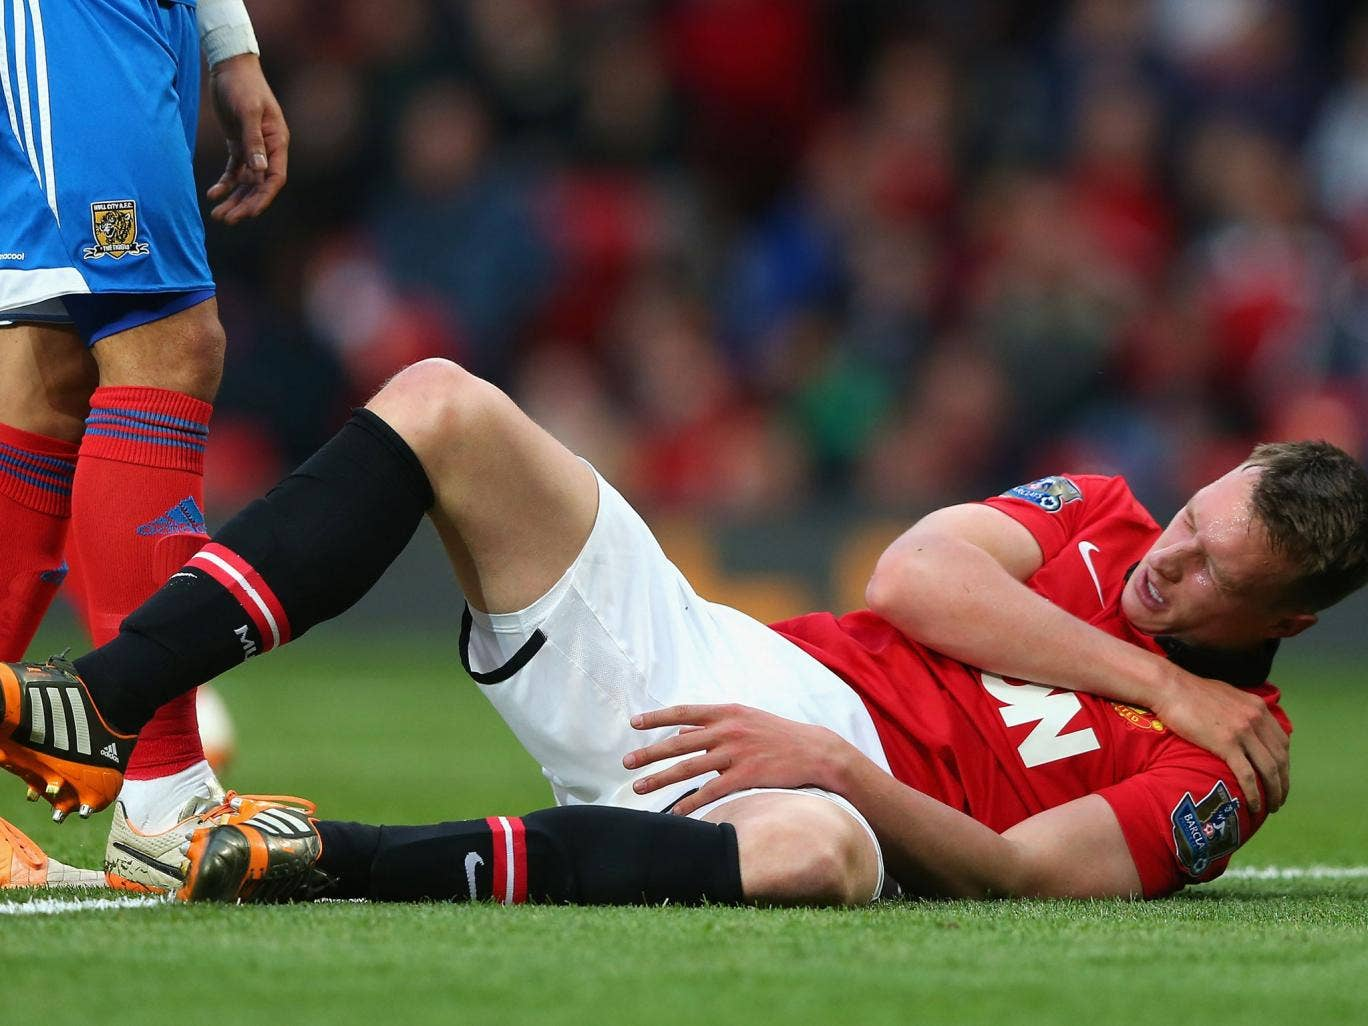 Phil Jones goes down clutching his shoulder in Manchester United's 3-1 win over Hull